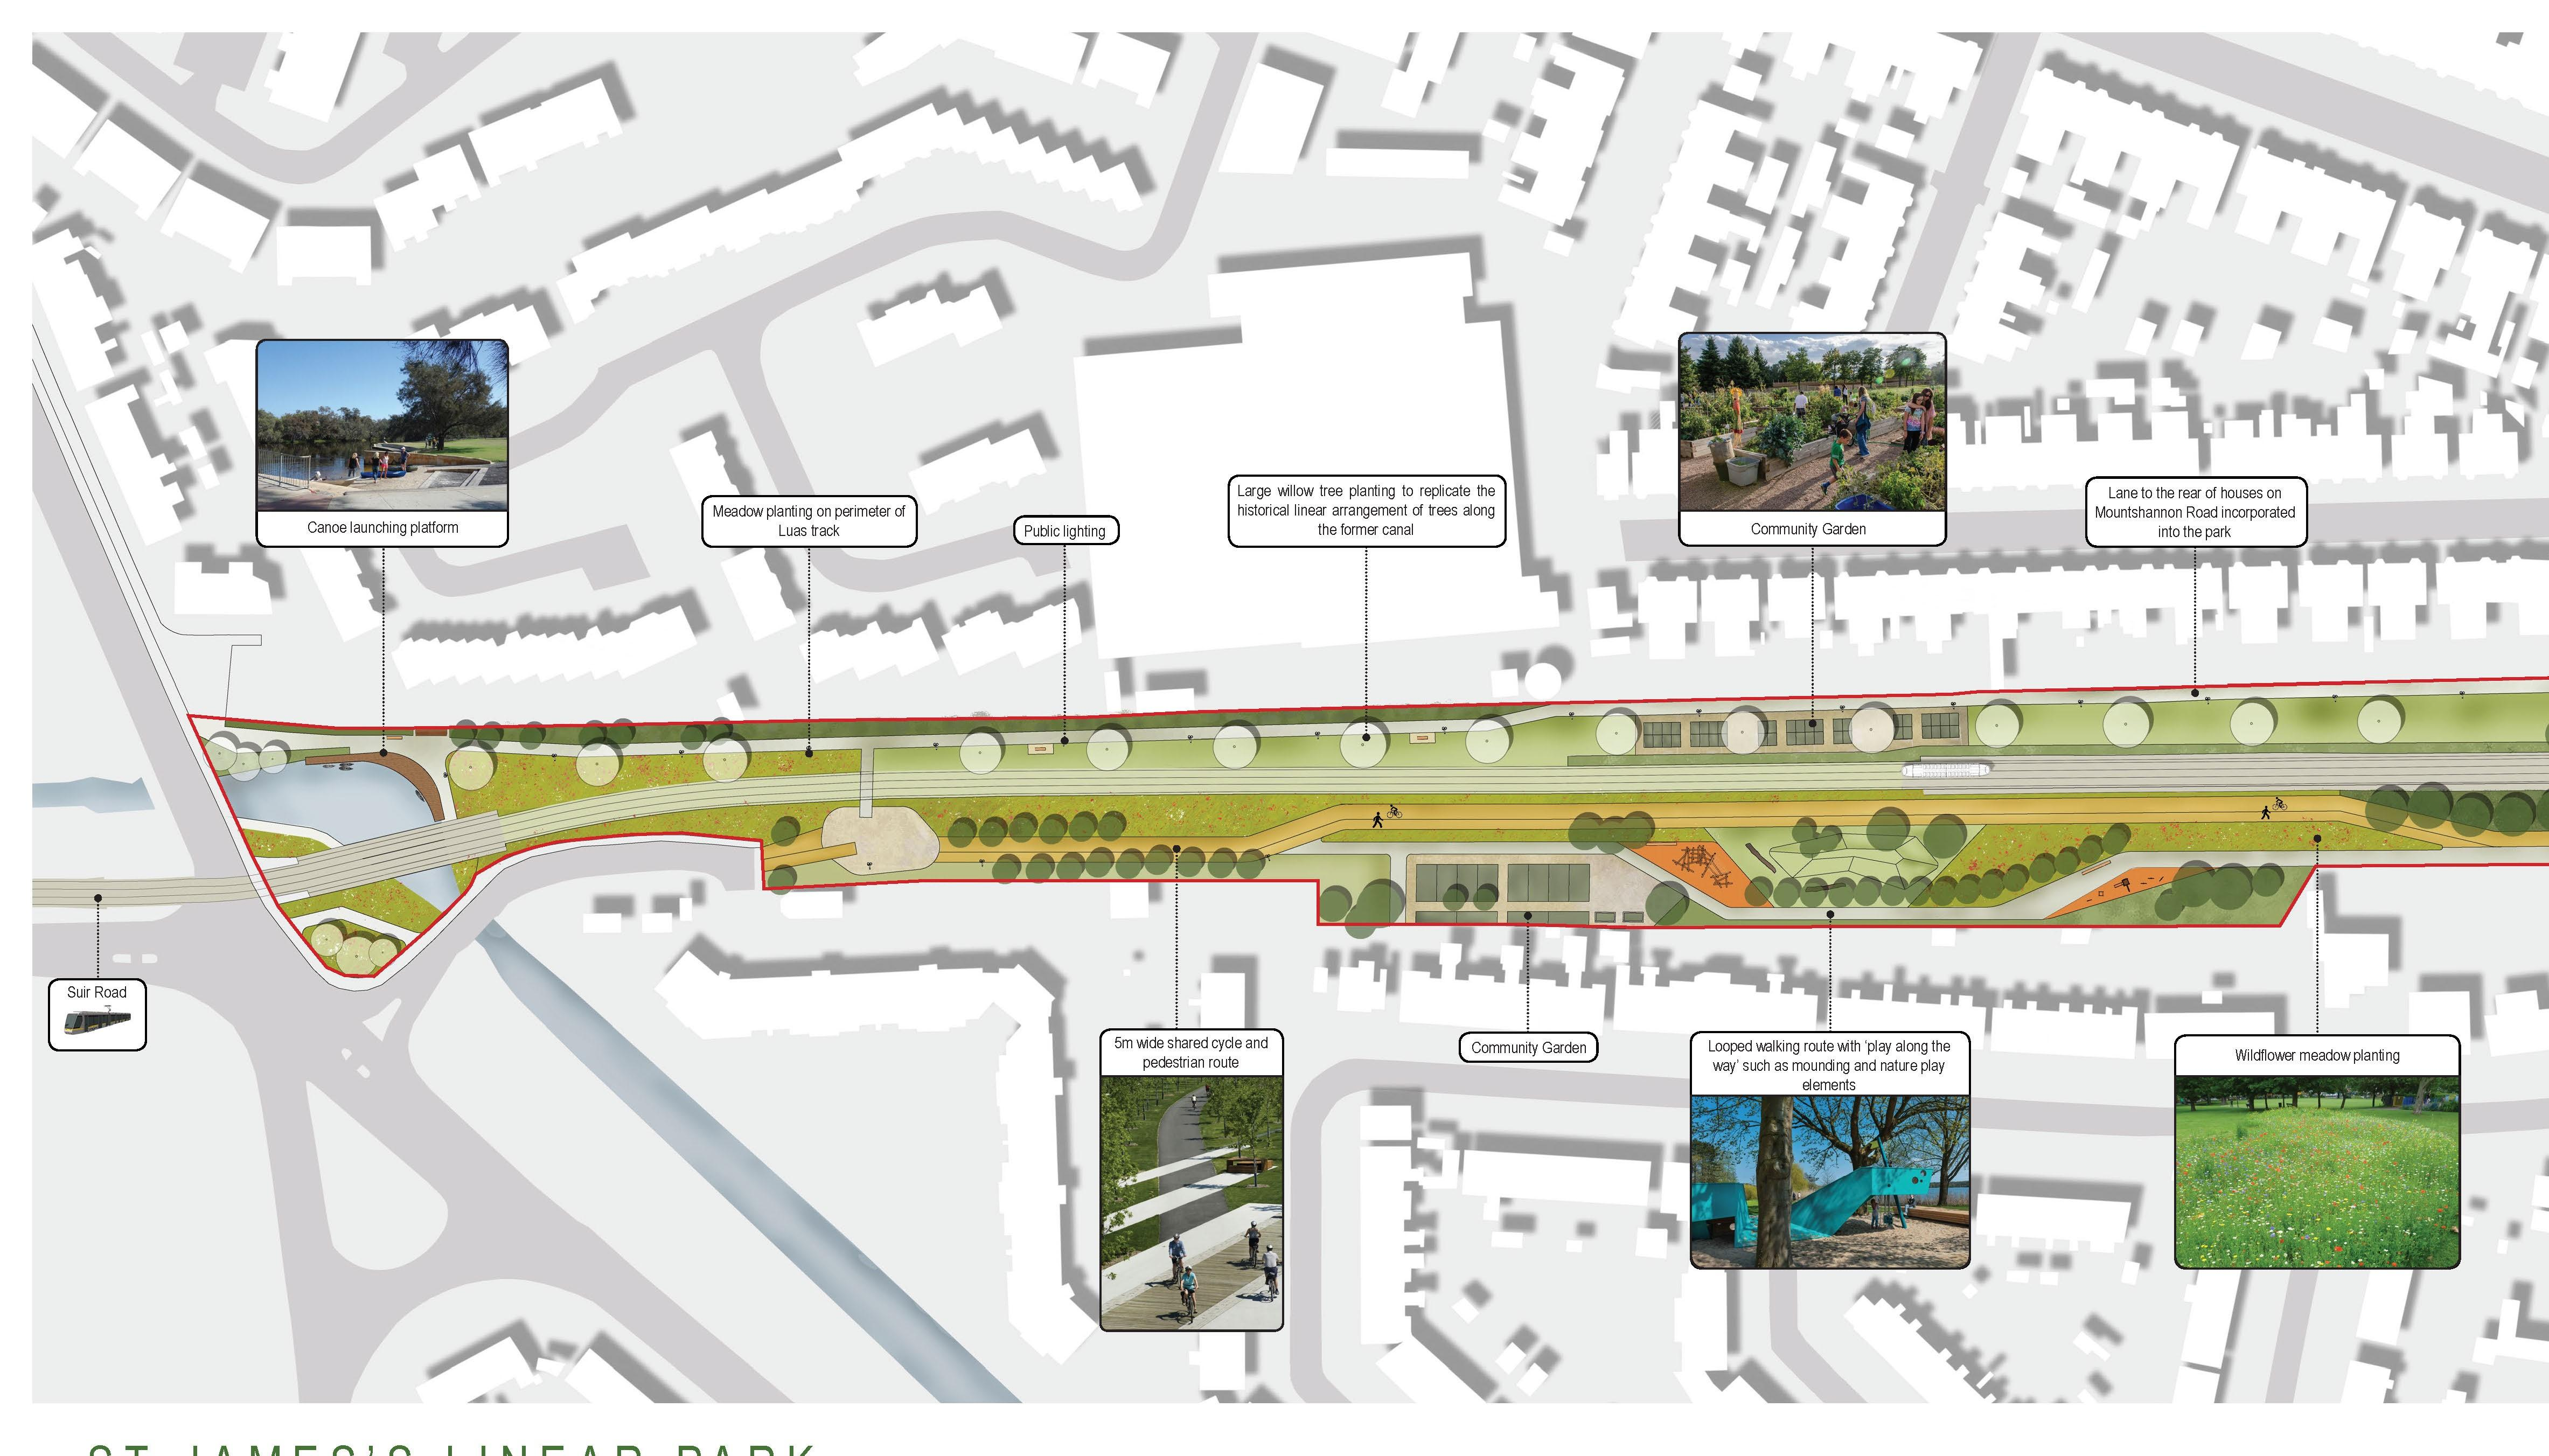 Design published for St James to Suir Road Linear Park